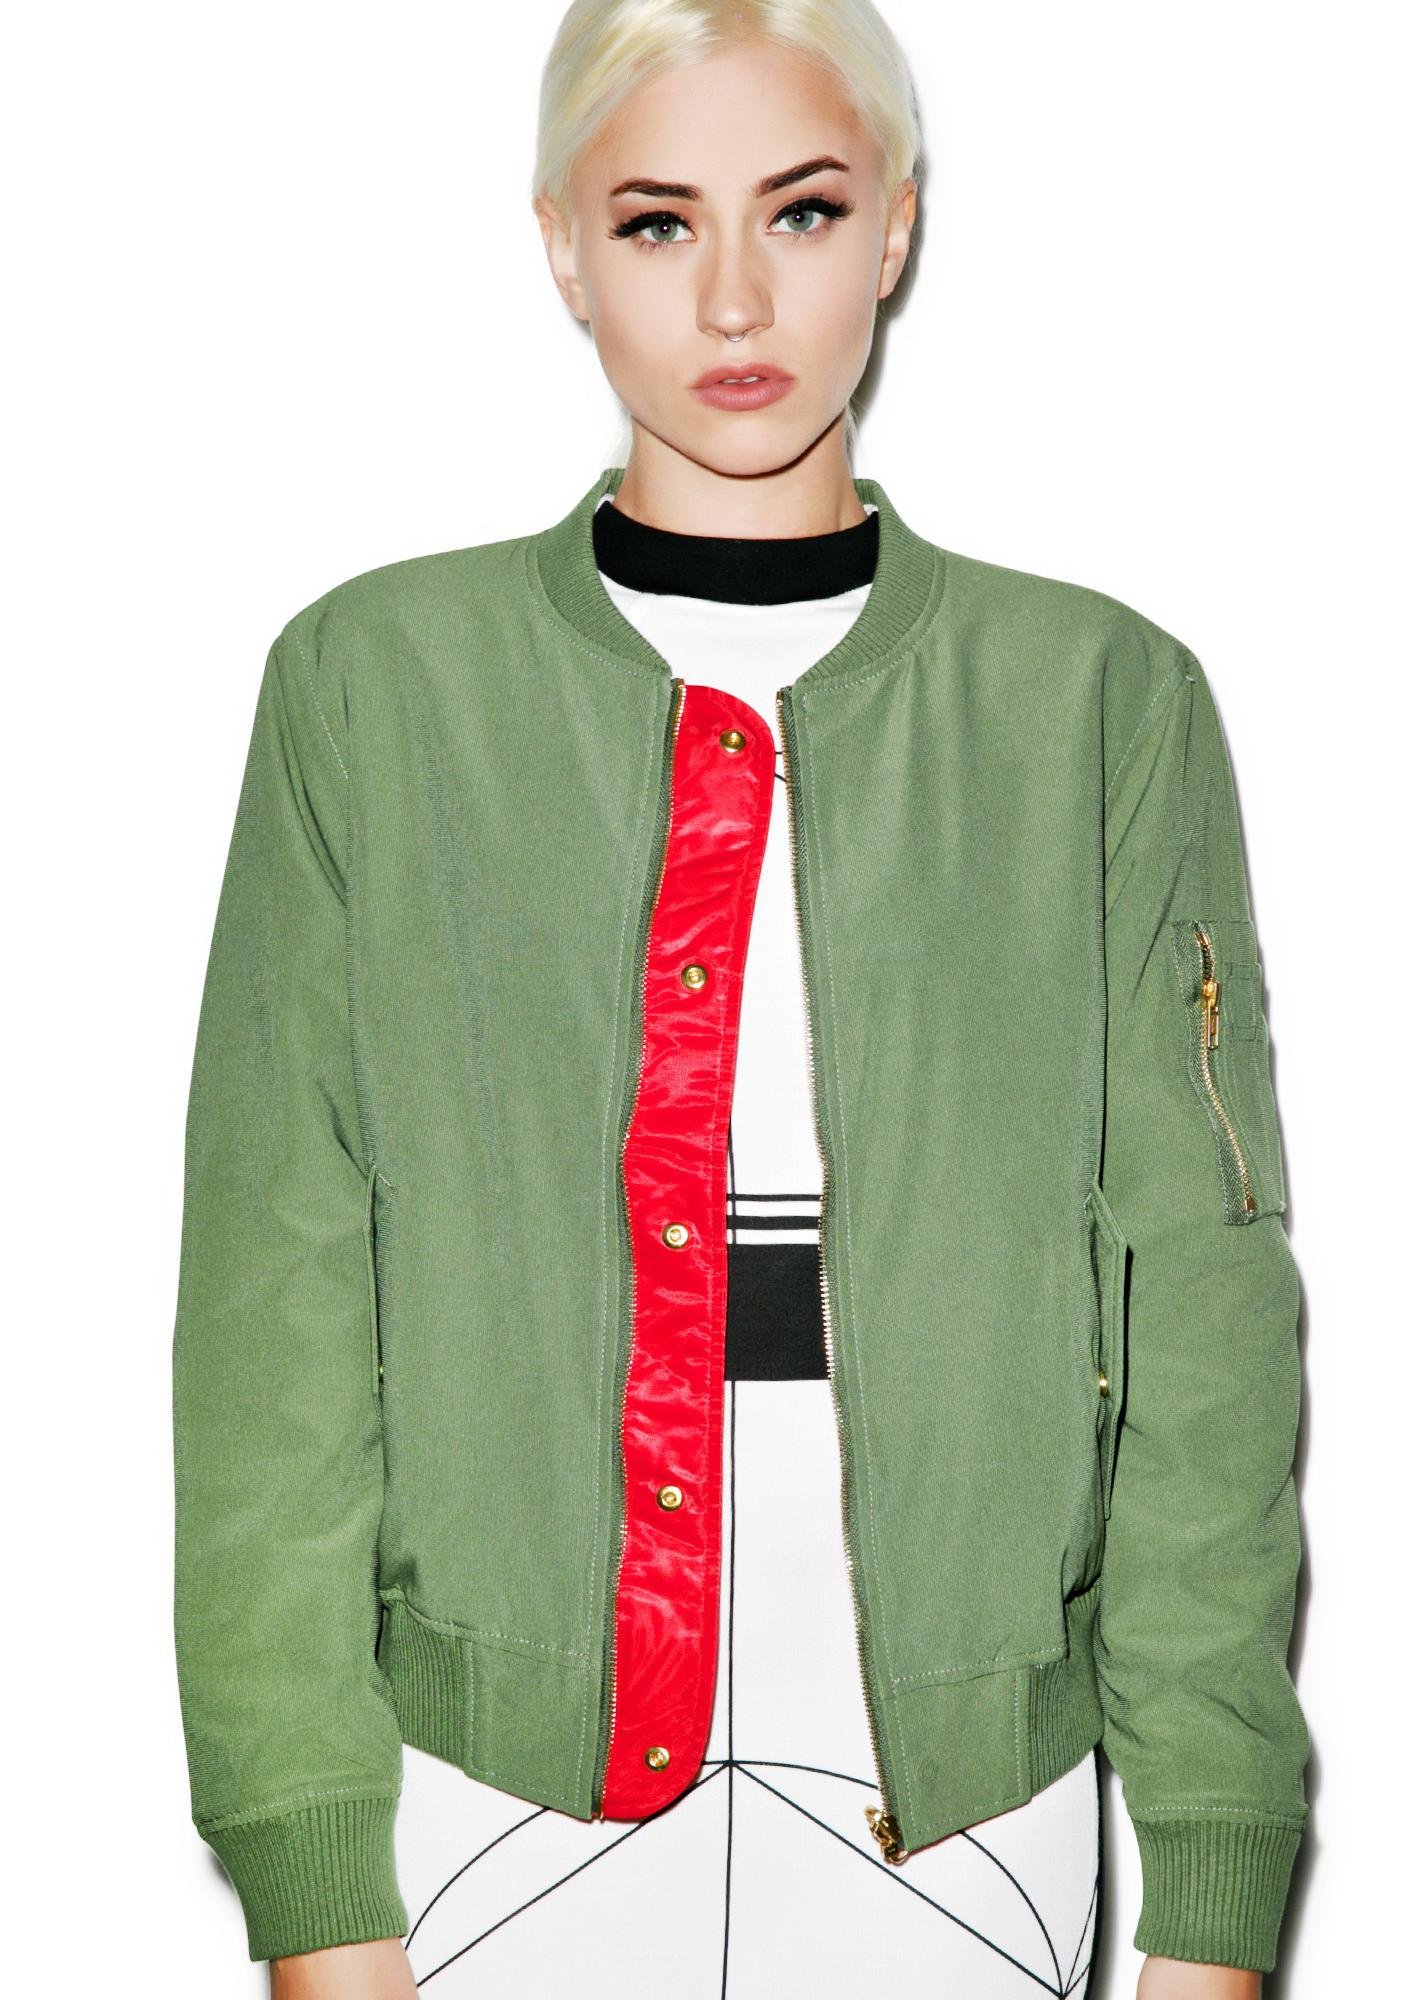 Black Scale Irene-Amelia MA-1 Jacket